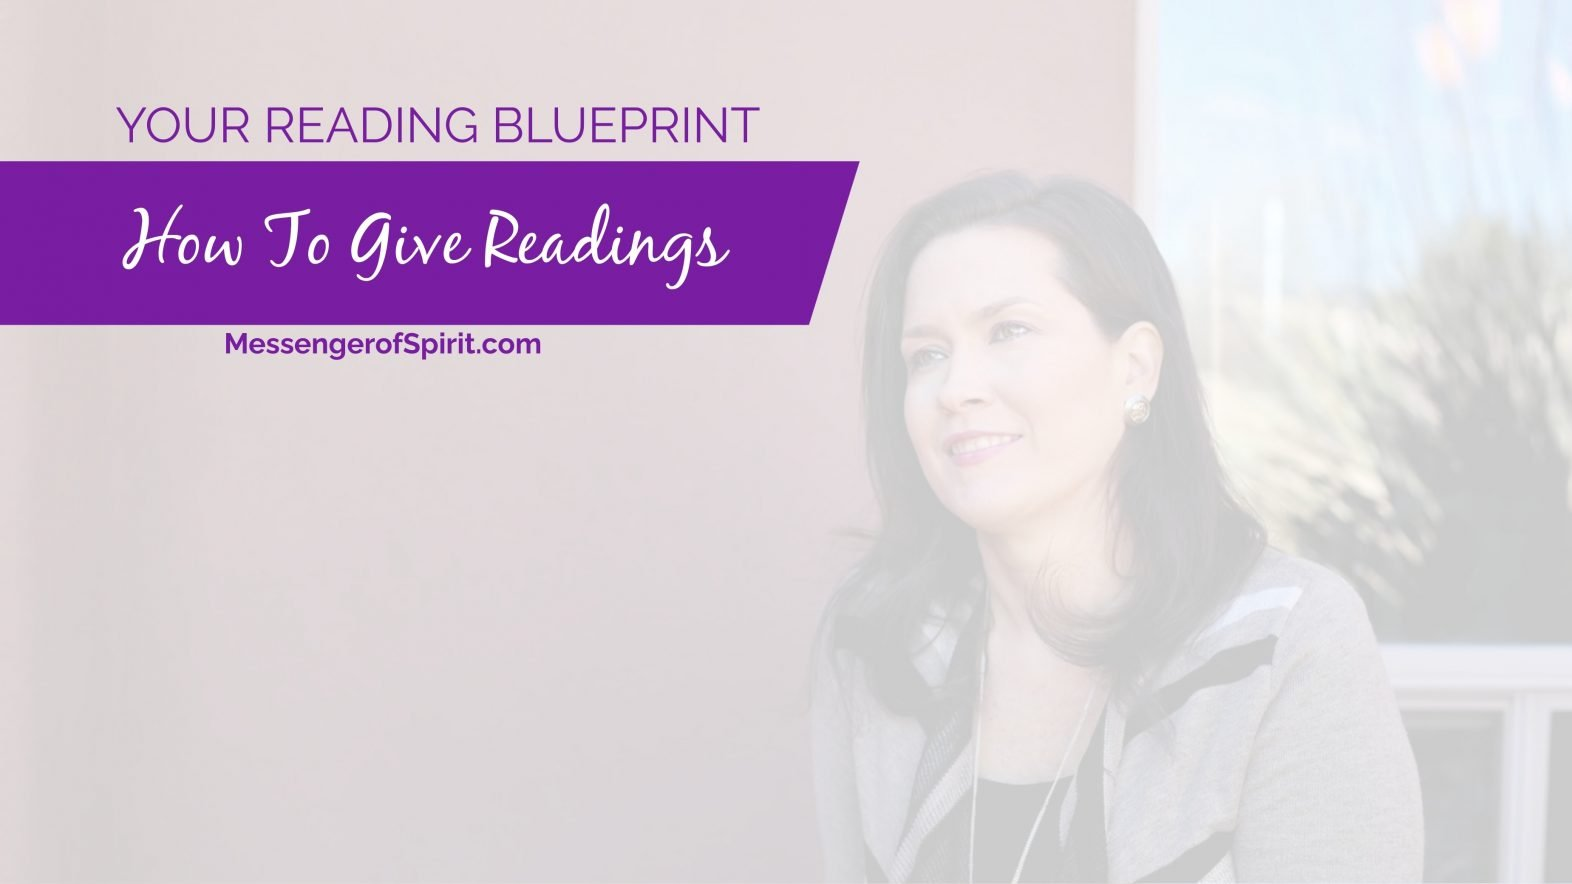 How To Give Readings